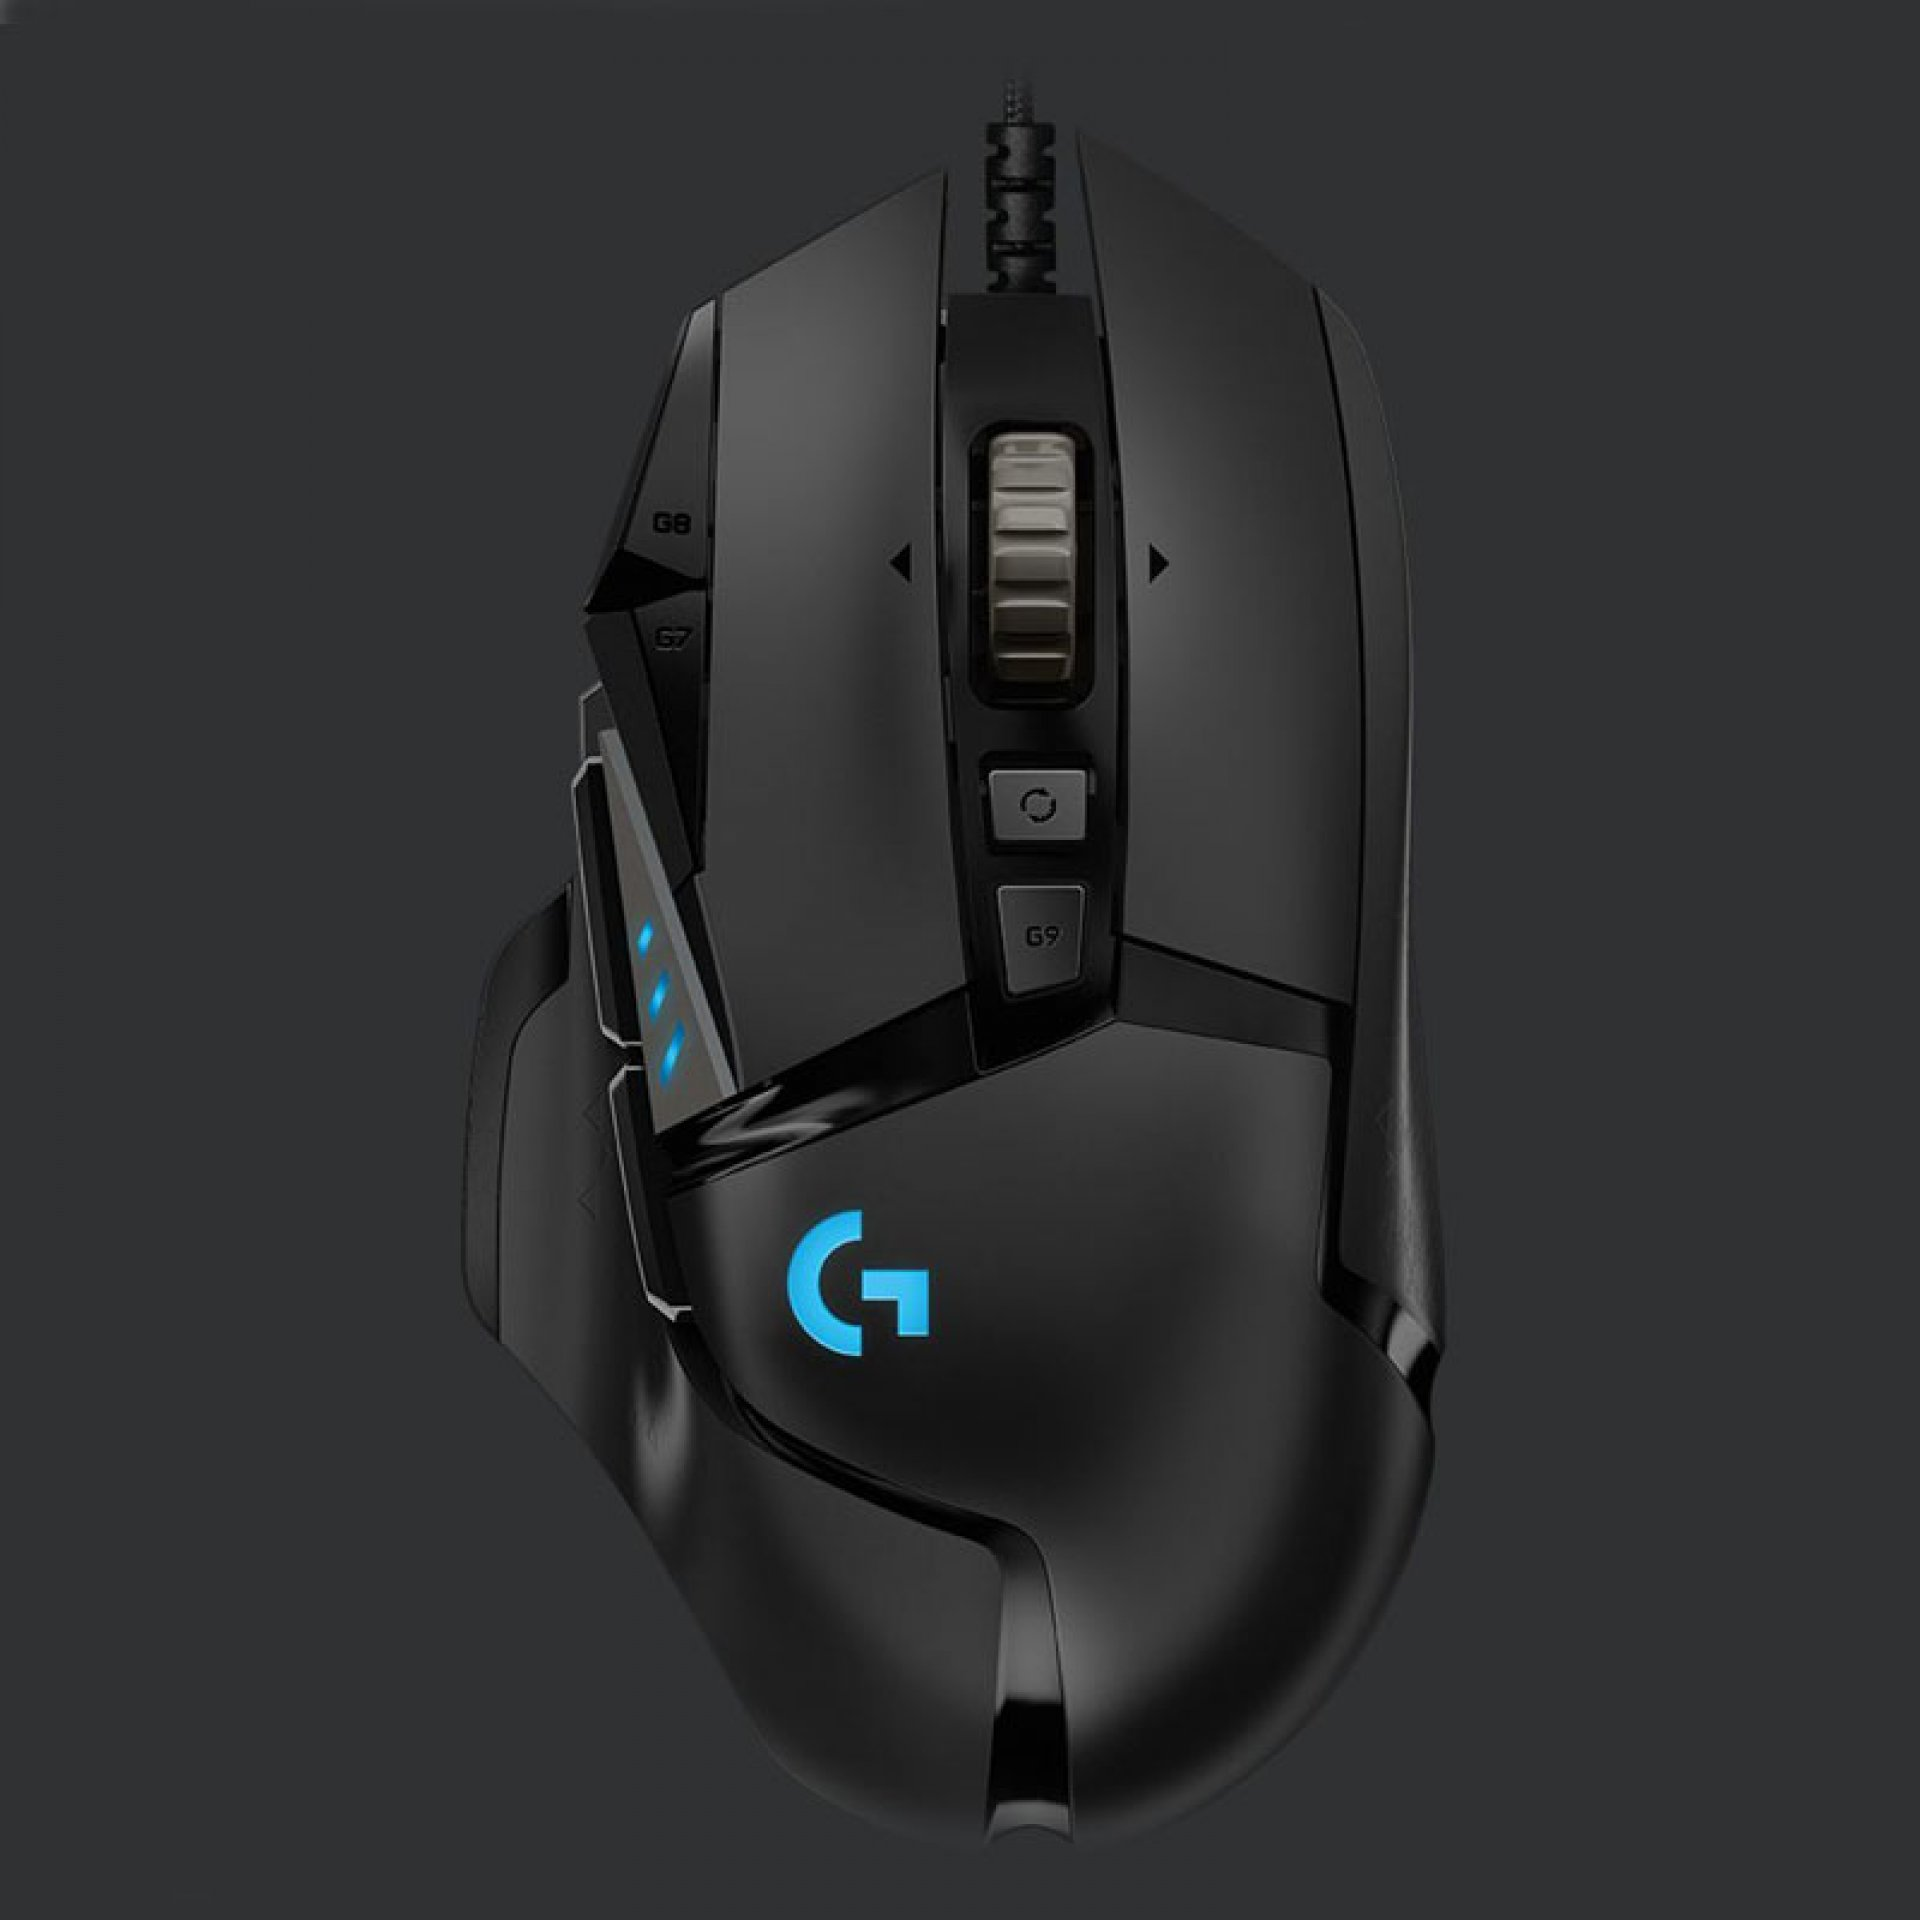 LOGITECH G502 HERO RGB Ambidextrous Wired Gaming Mouse - (16000DPI, Optical Sensor, RGB Lighting, 1000Hz Polling Rate)